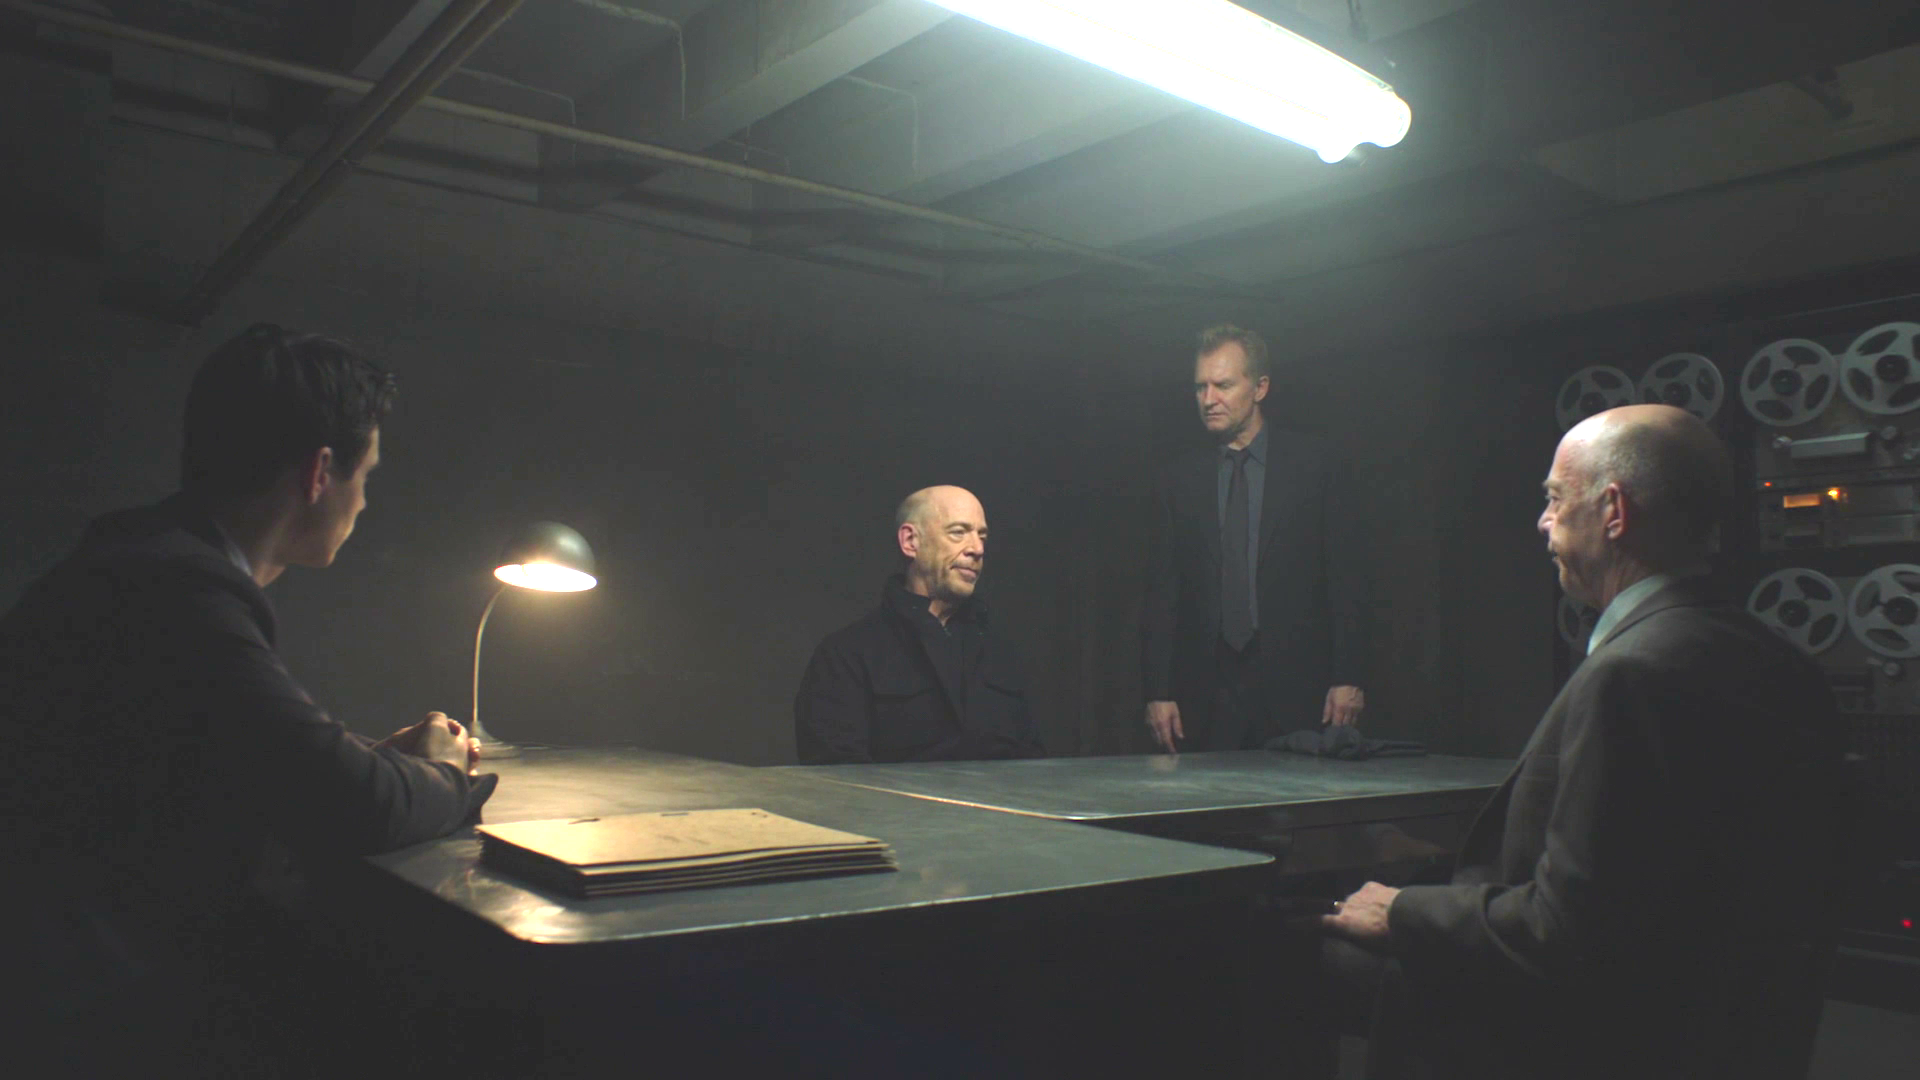 Ulrich Thomsen and J.K. Simmons in a scene from the TV series Counterpart